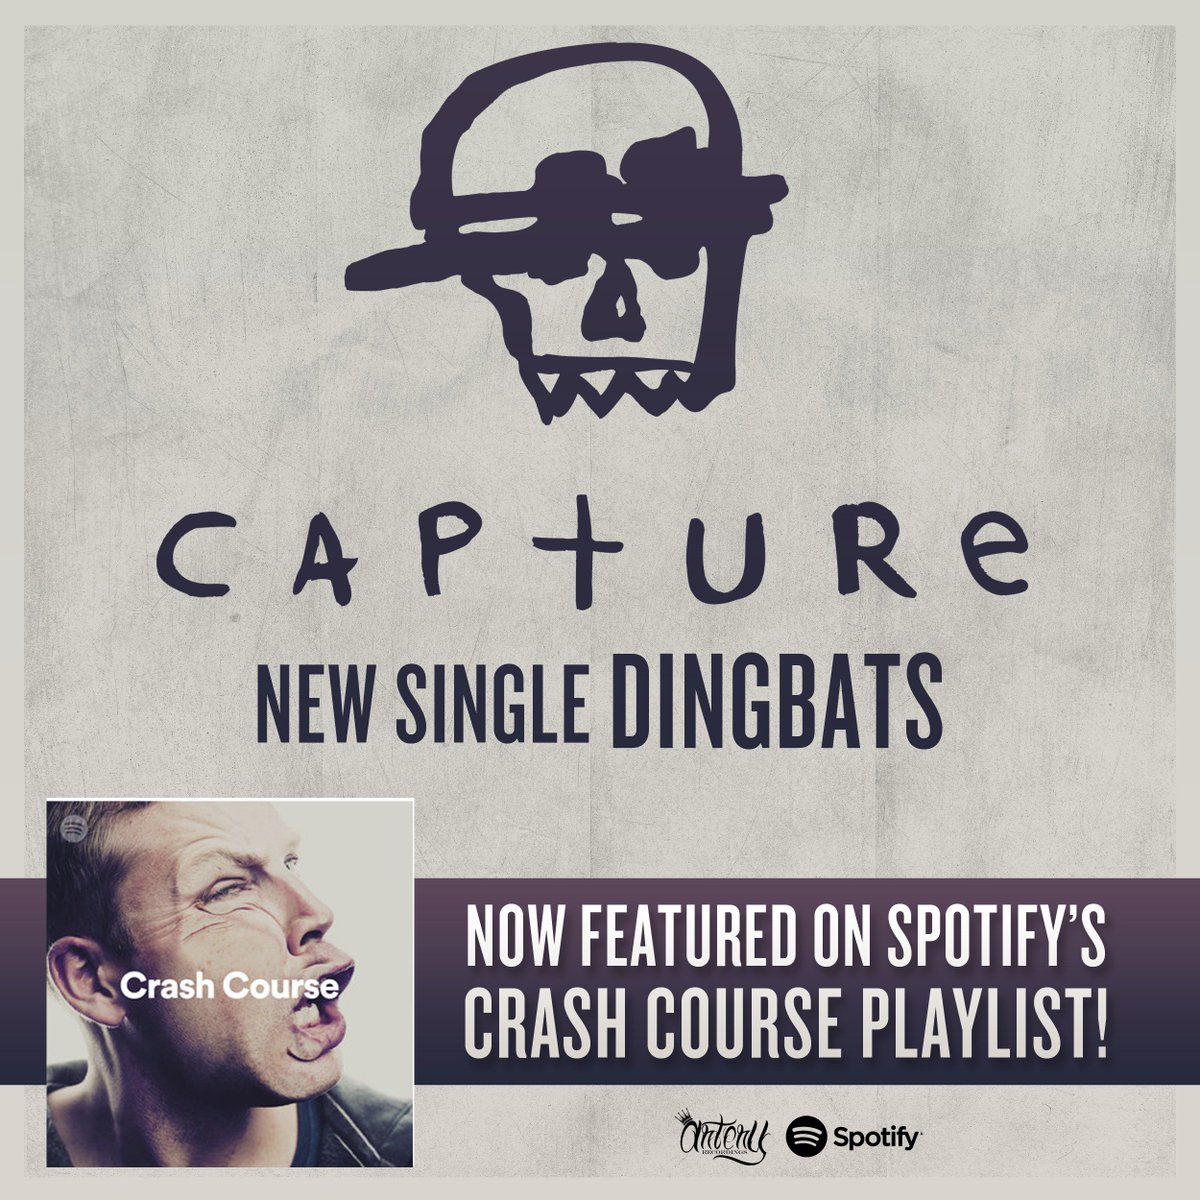 Have you listened to 'Dingbats' yet? Take a listen to our latest single in @Spotify's Crash Course playlist! open.spotify.com/user/spotify/p…